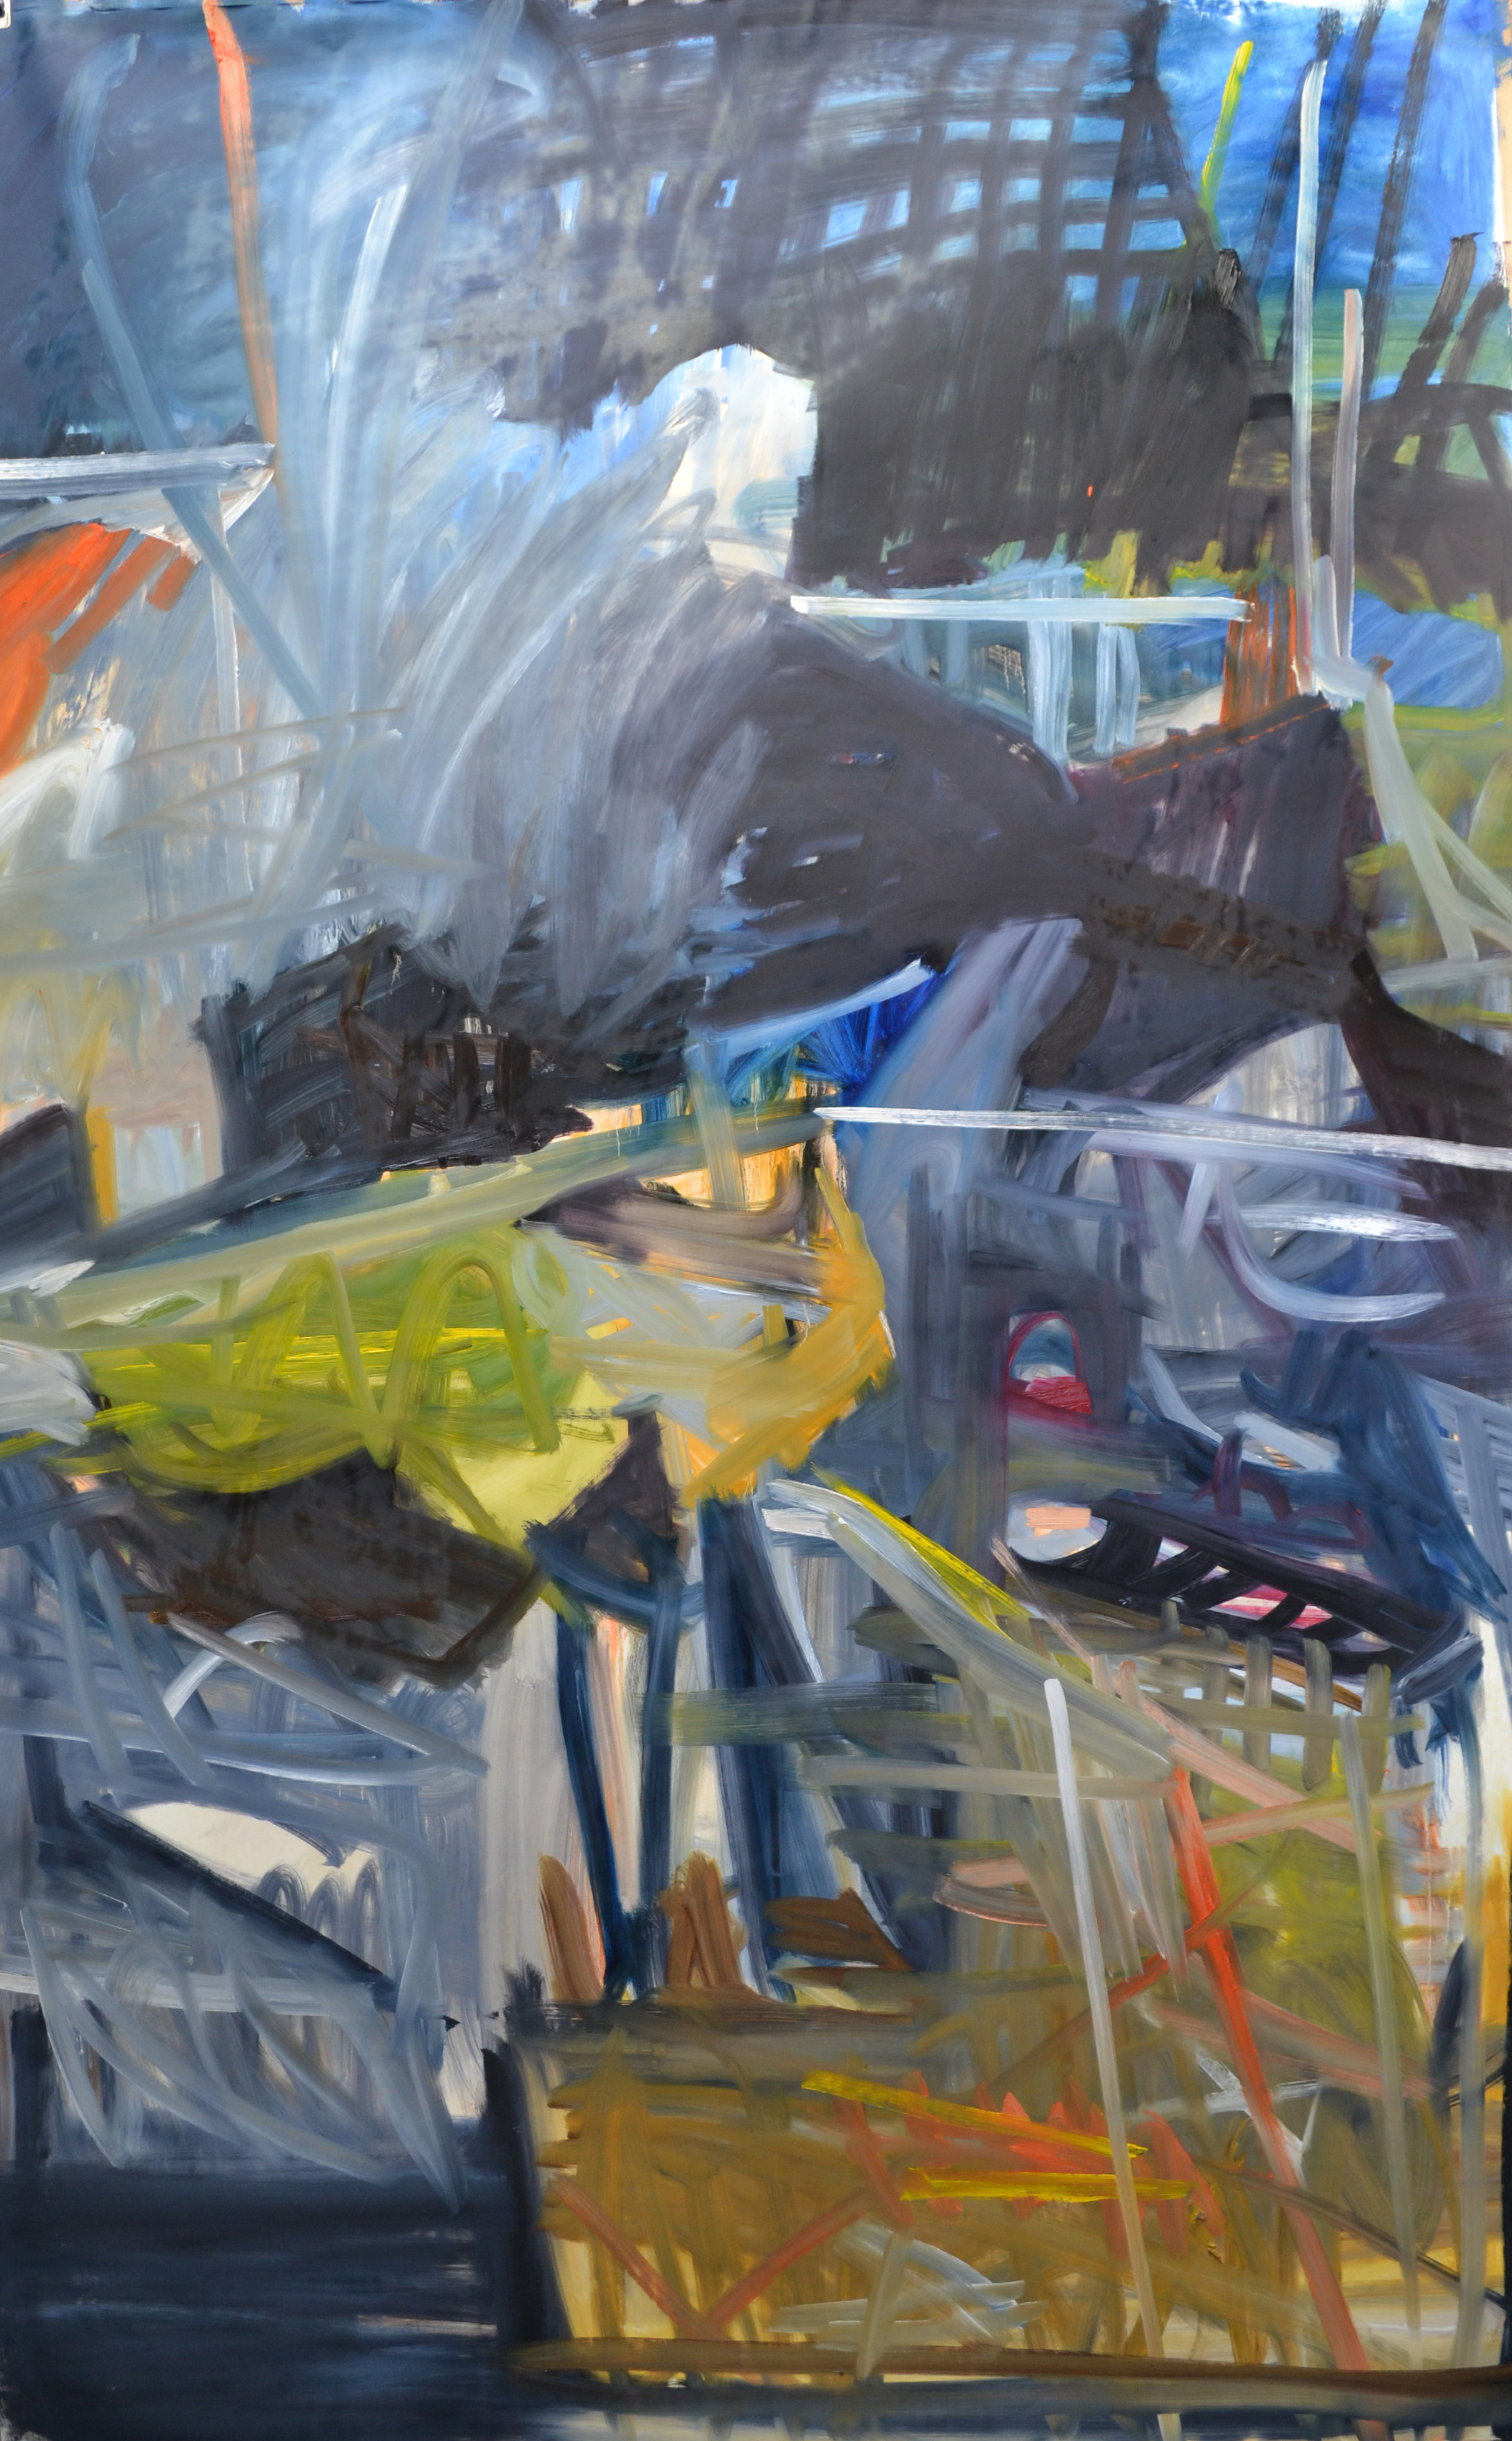 Studio 4, 2016-17. 210 x 140 cm, oil on paper.